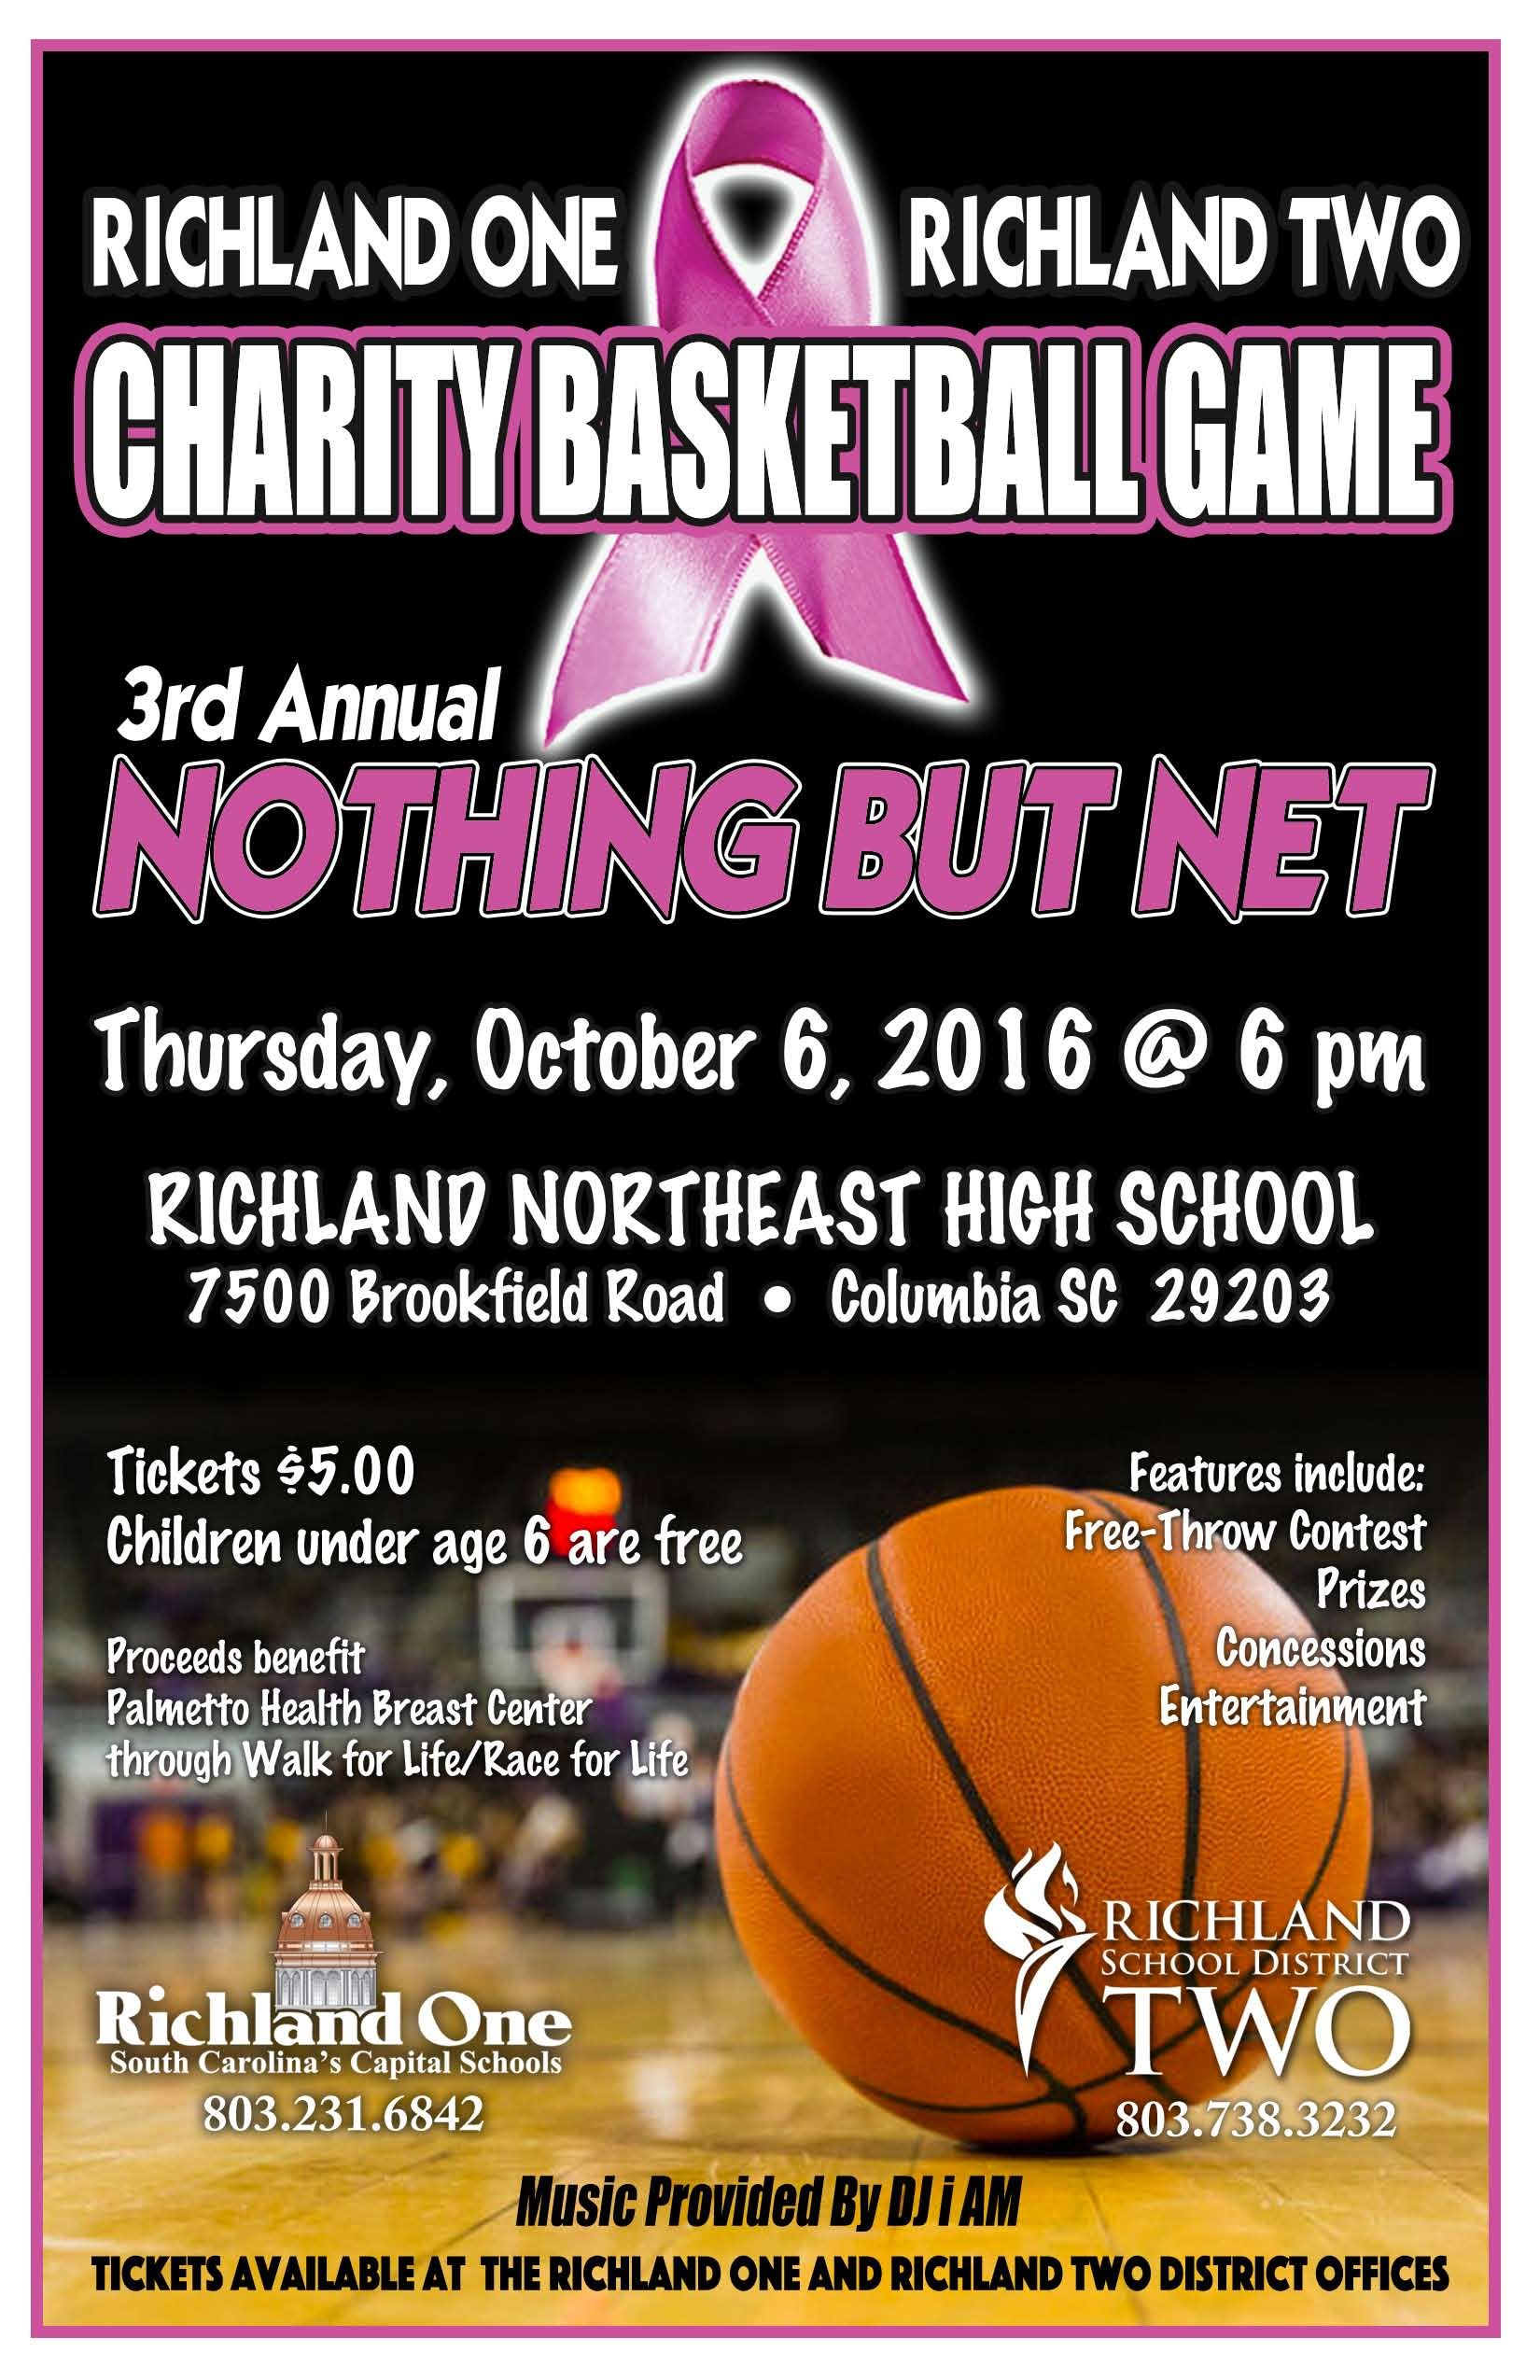 Nothing But Net Oct 6 At Richland Northeast High School High School School Richland